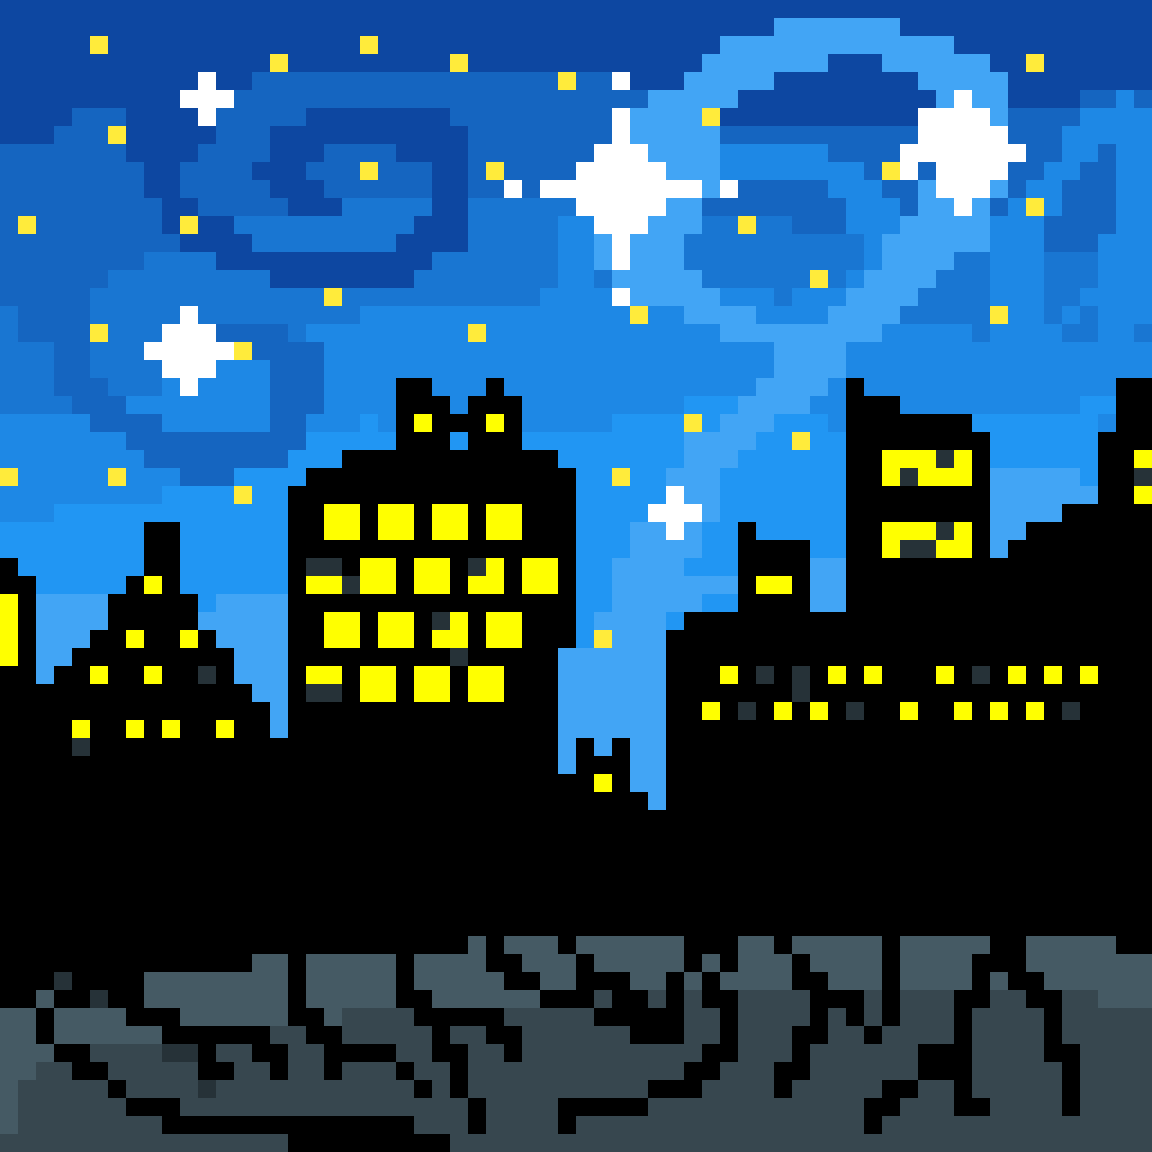 The broken city at night by PastelCookie